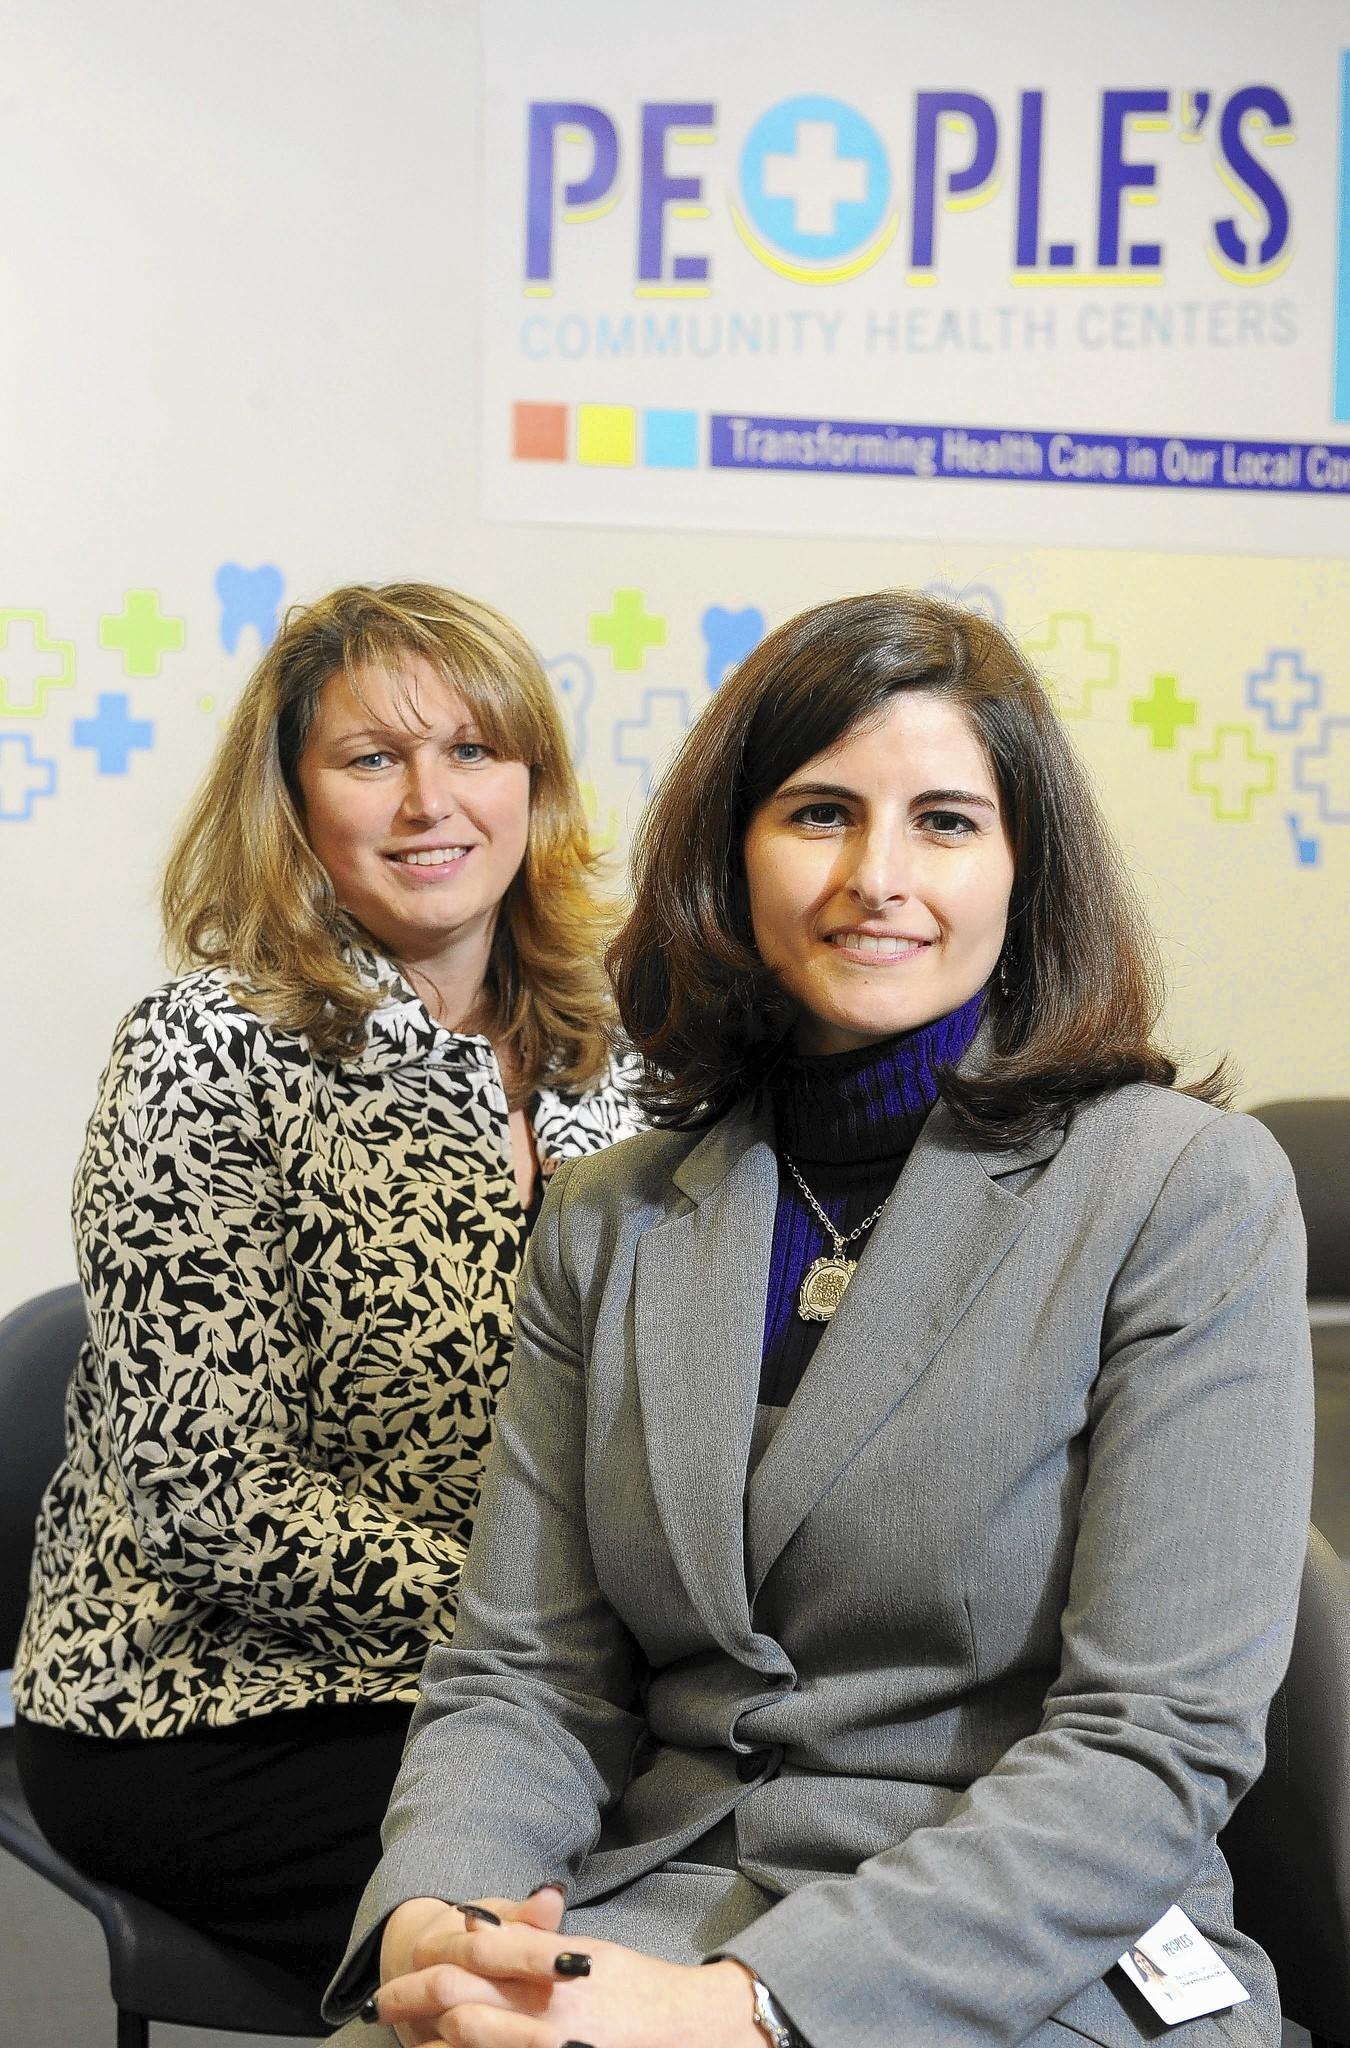 People's Community Health Centers will be opening a combination health and community center in the Pioneer City area next to Van Bokkelen Elementary School in Severn. Suzanne Bates-Crandall, left, Business Development and Community Relations, and Stacy Fruhling, Chief Administrative Officer of People's Community Health Centers, are pictured in their Brooklyn Park location.